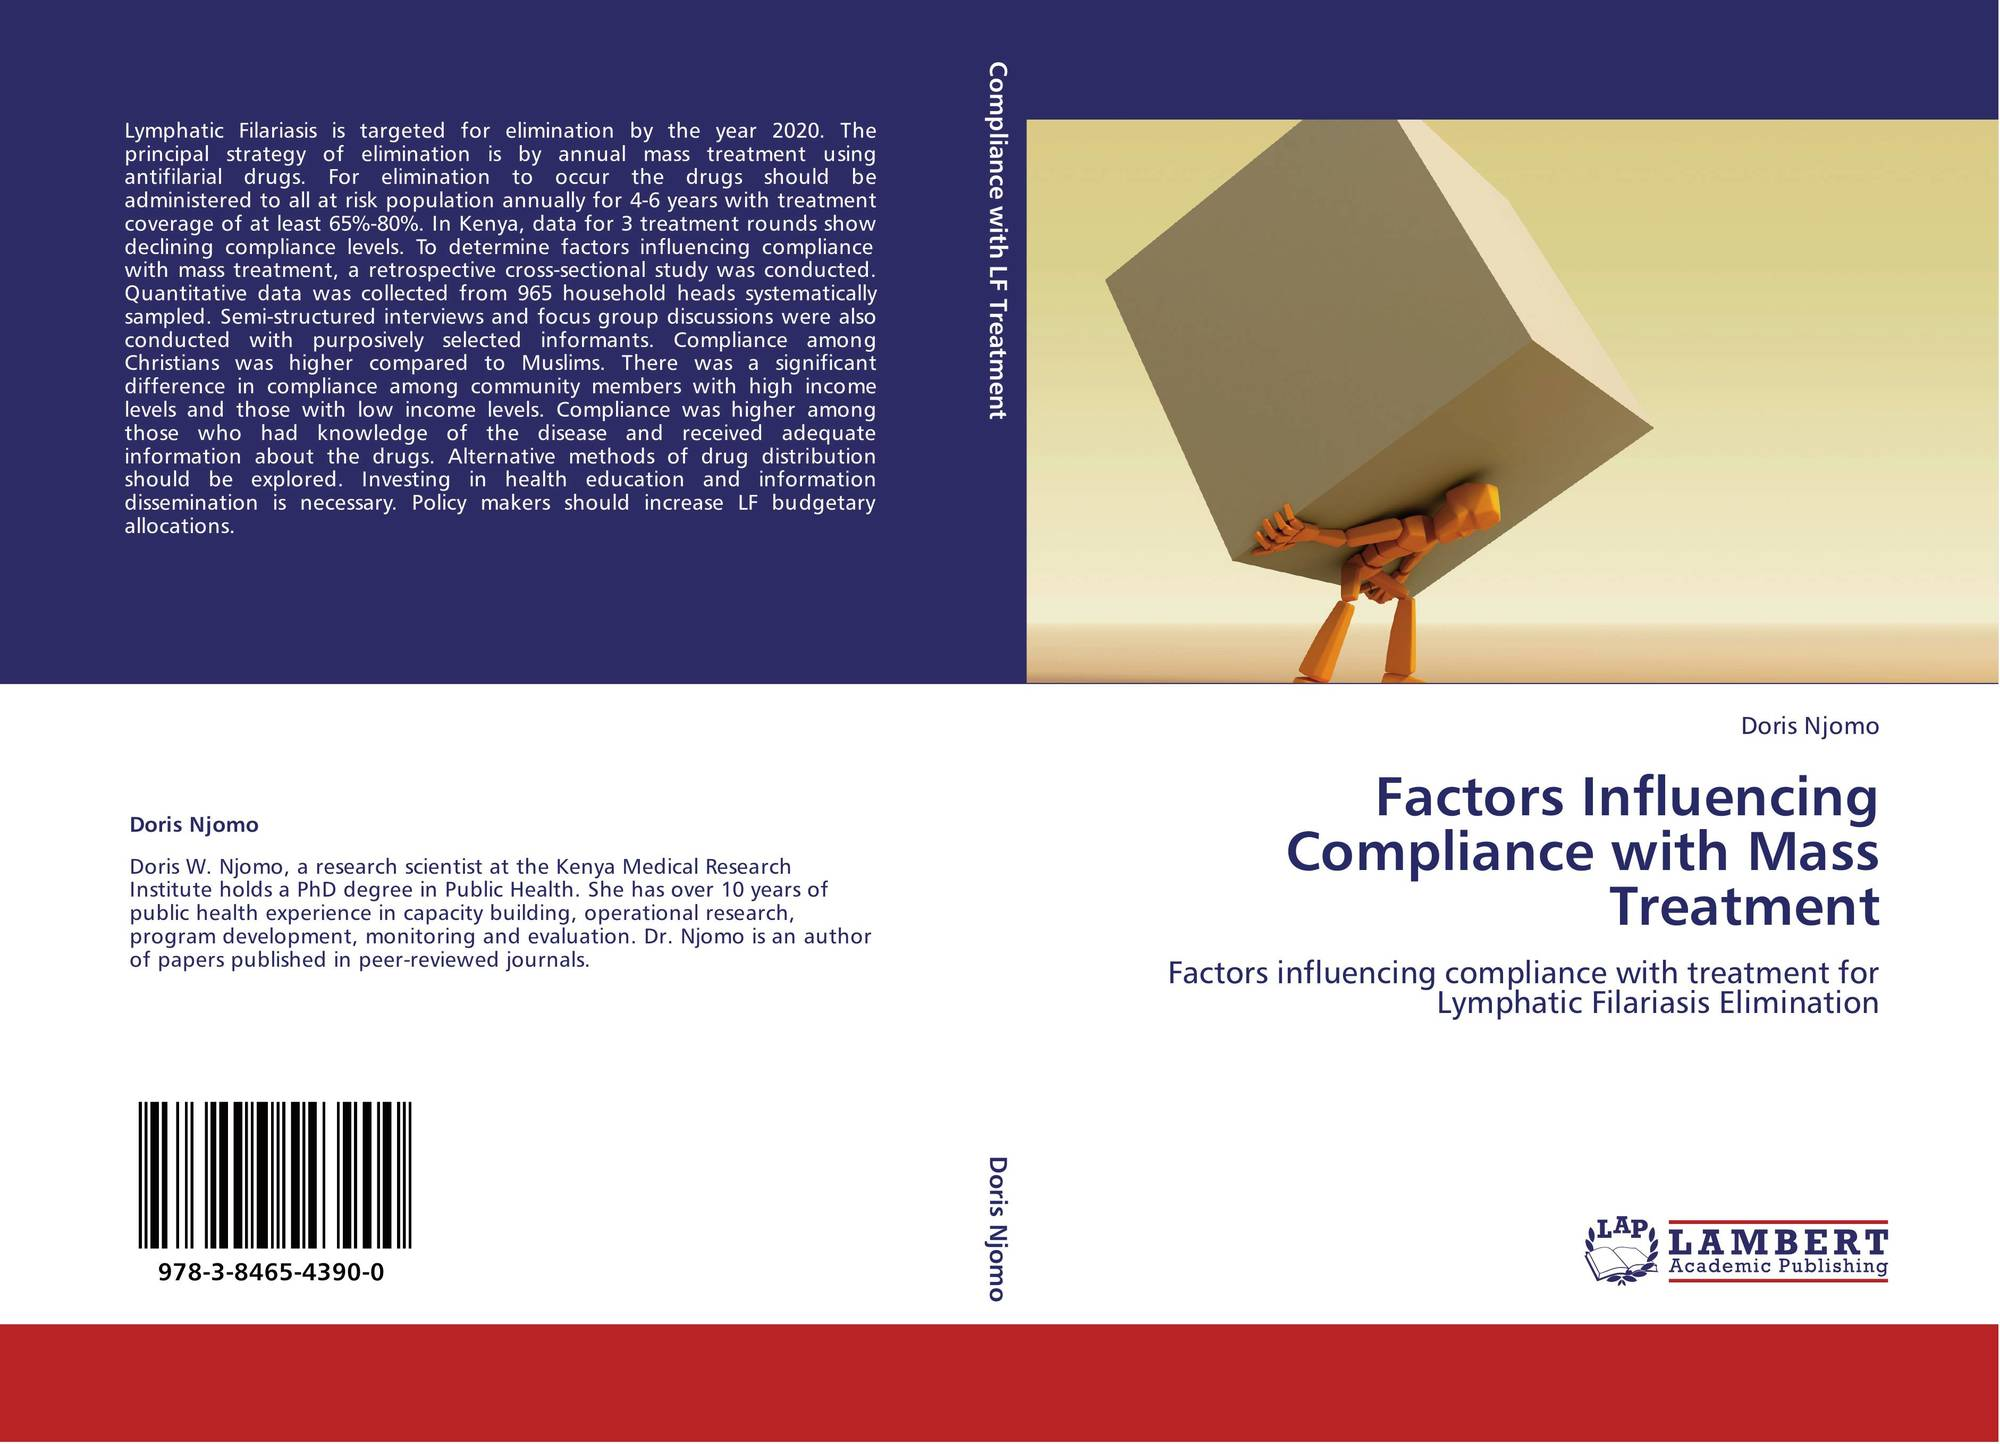 Factors Influencing Compliance with Mass Treatment, 978-3